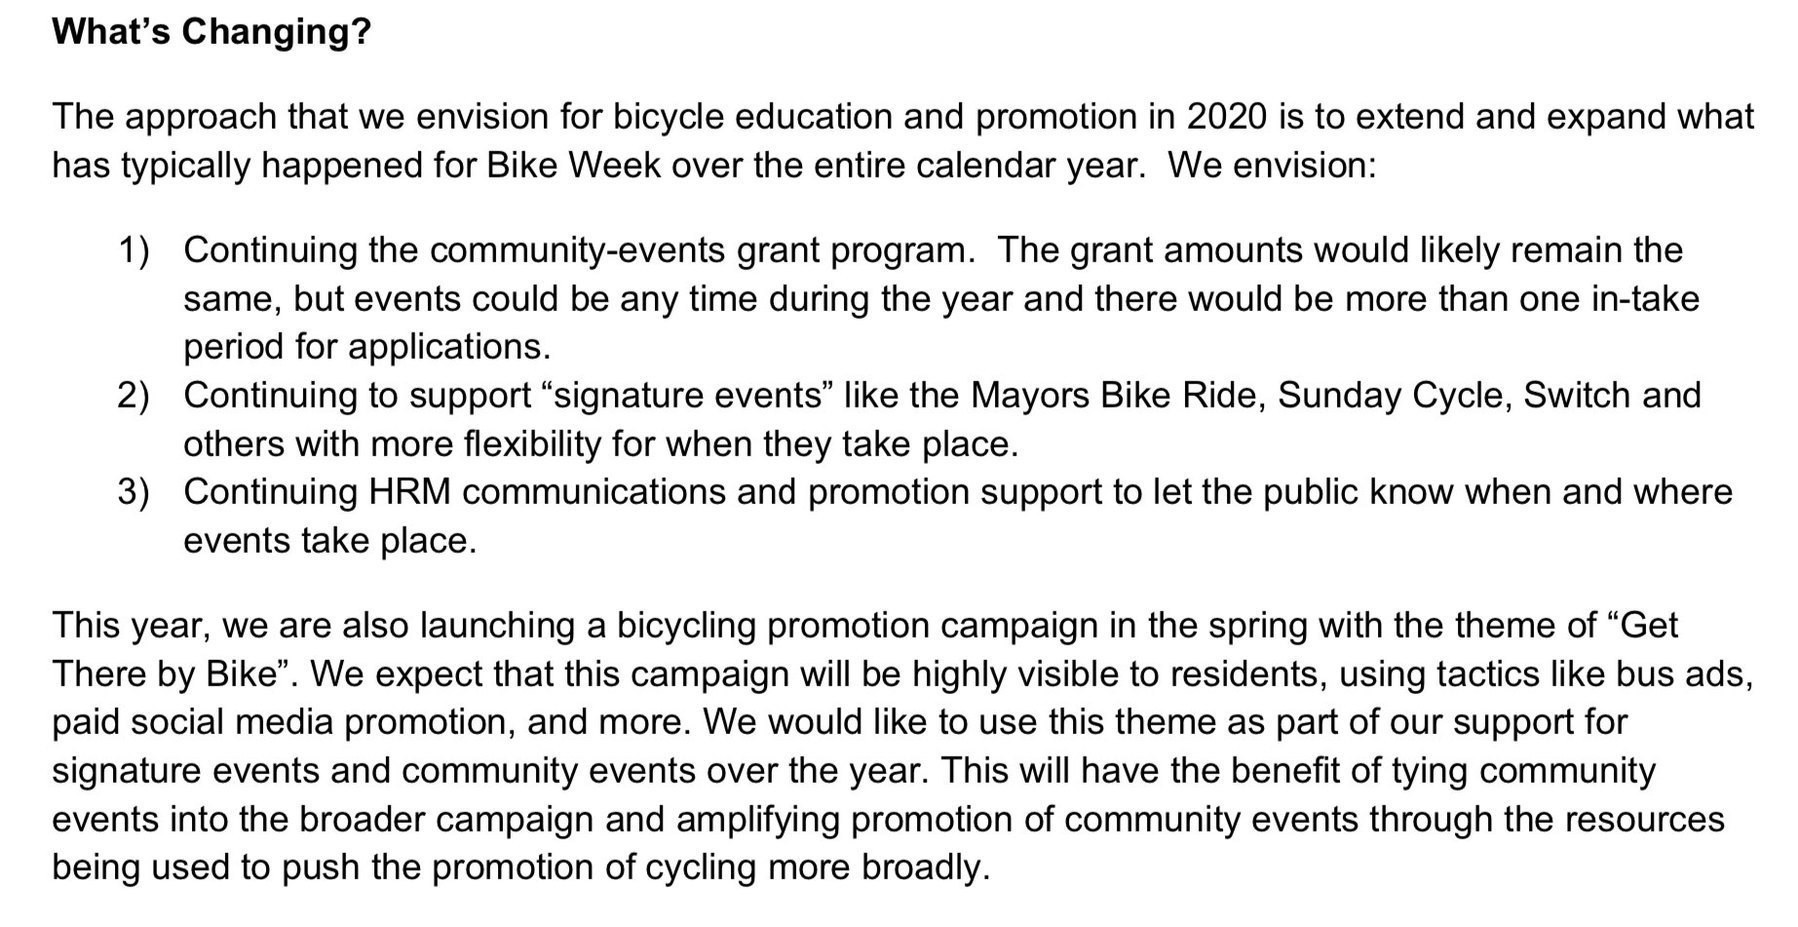 "What's Changing? The approach that we envision for bicycle education and promotion in 2020 is to extend and expand what has typically happened for Bike Week over the entire calendar year. We envision: 1) Continuing the community-events grant program. The grant amounts would likely remain the same, but events could be any time during the year and there would be more than one in-take period for applications. 2) Continuing to support ""signature events"" like the Mayors Bike Ride, Sunday Cycle, Switch and others with more flexibility for when they take place. 3) Continuing HRM communications and promotion support to let the public know when and where events take place. This year, we are also launching a bicycling promotion campaign in the spring with the theme of ""Get There by Bike"". We expect that this campaign will be highly visible to residents, using tactics like bus ads, paid social media promotion, and more. We would like to use this theme as part of our support for signature events and community events over the year. This will have the benefit of tying community events into the broader campaign and amplifying promotion of community events through the resources being used to push the promotion of cycling more broadly."